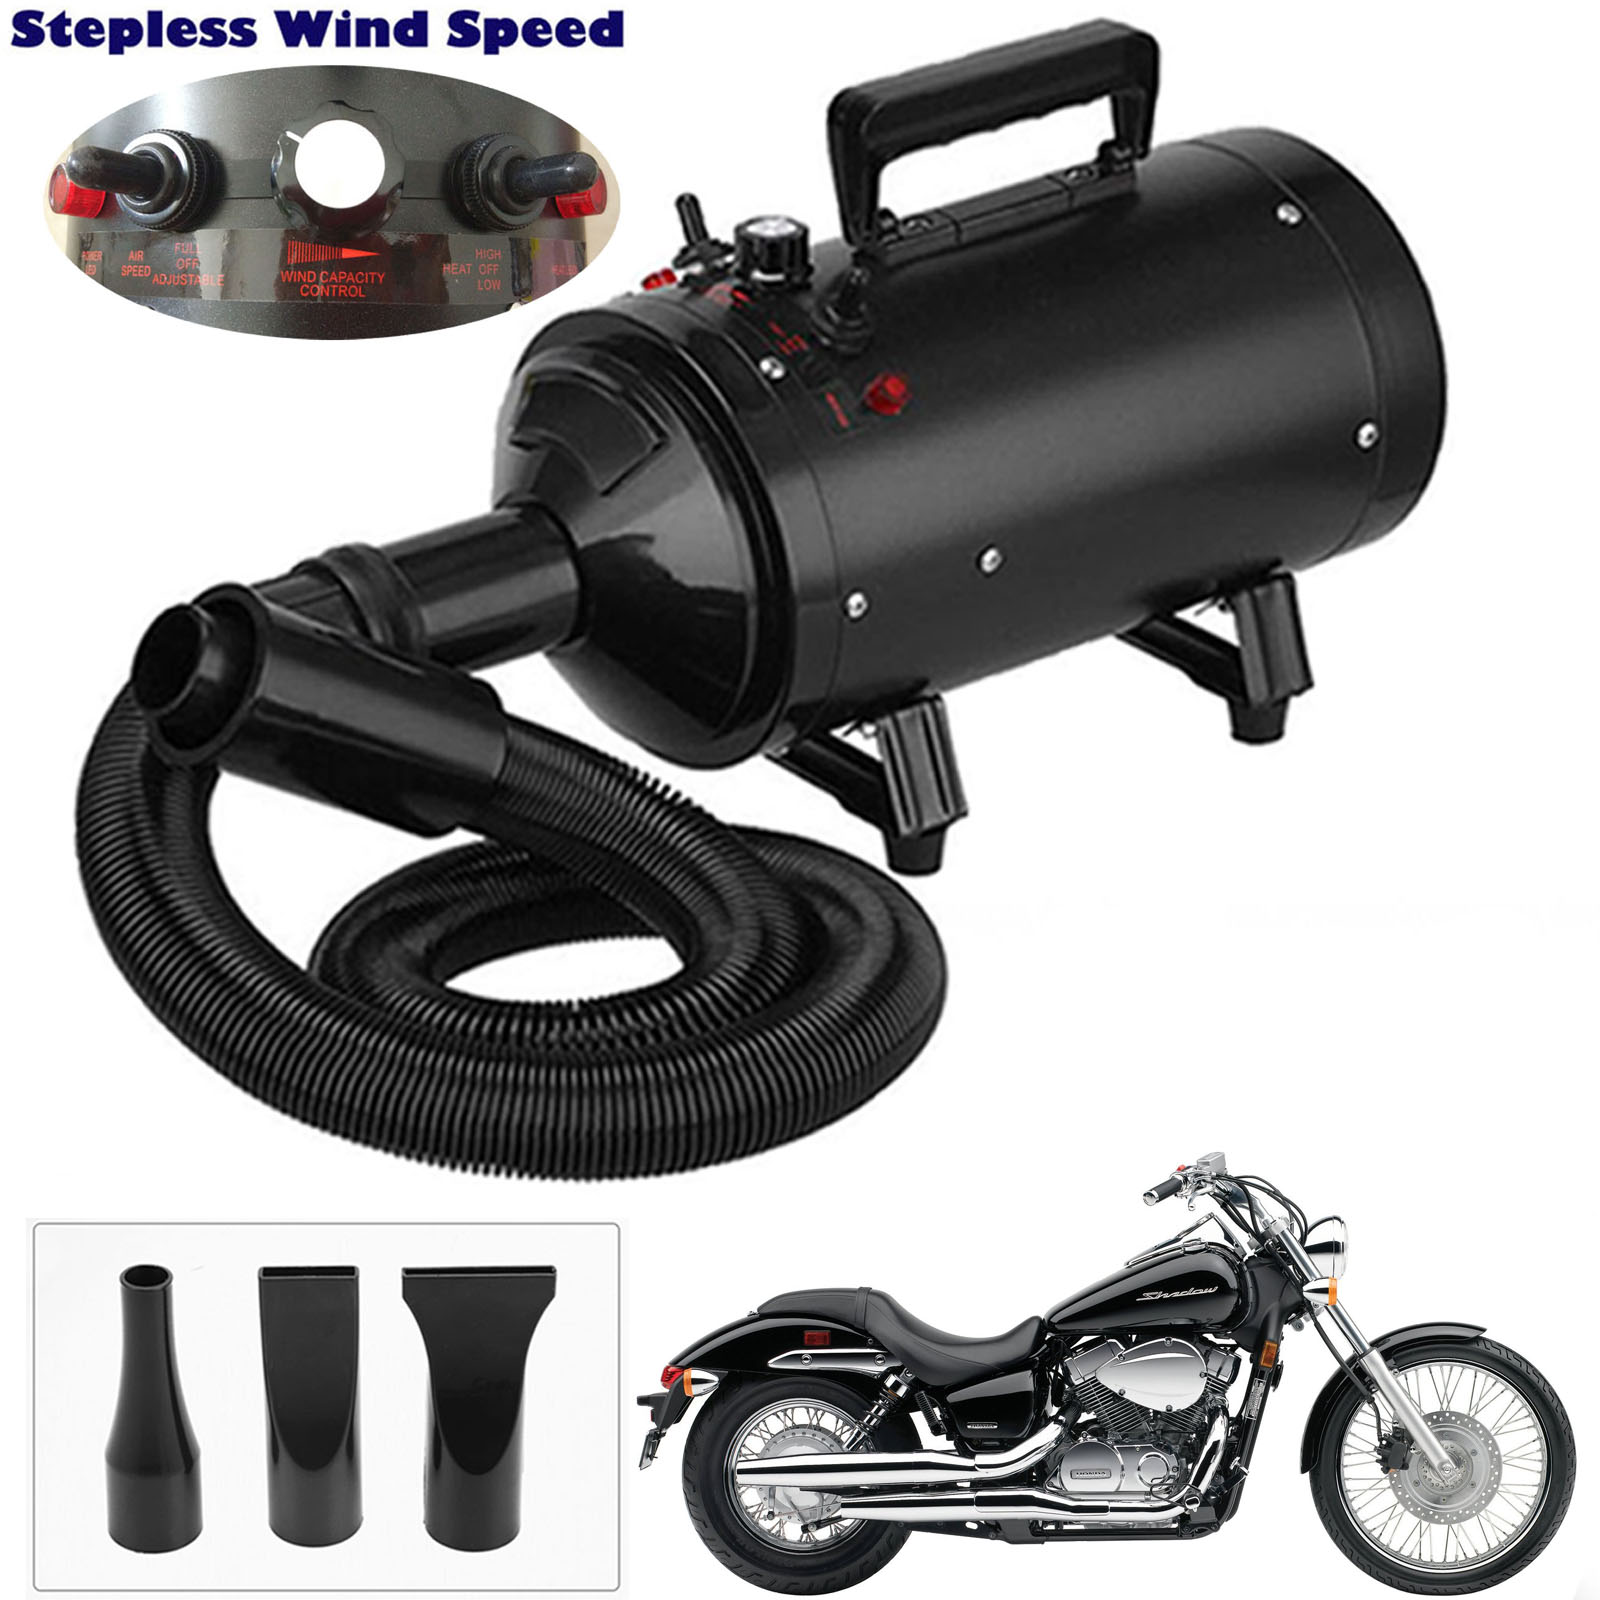 Air Force Blaster Dryer Compact Car and Motorcycle Dryer and Duster, Metro Dryer, Metro Air Force Blaster 2800W, Metro Blaster Dryer, Air Dryer